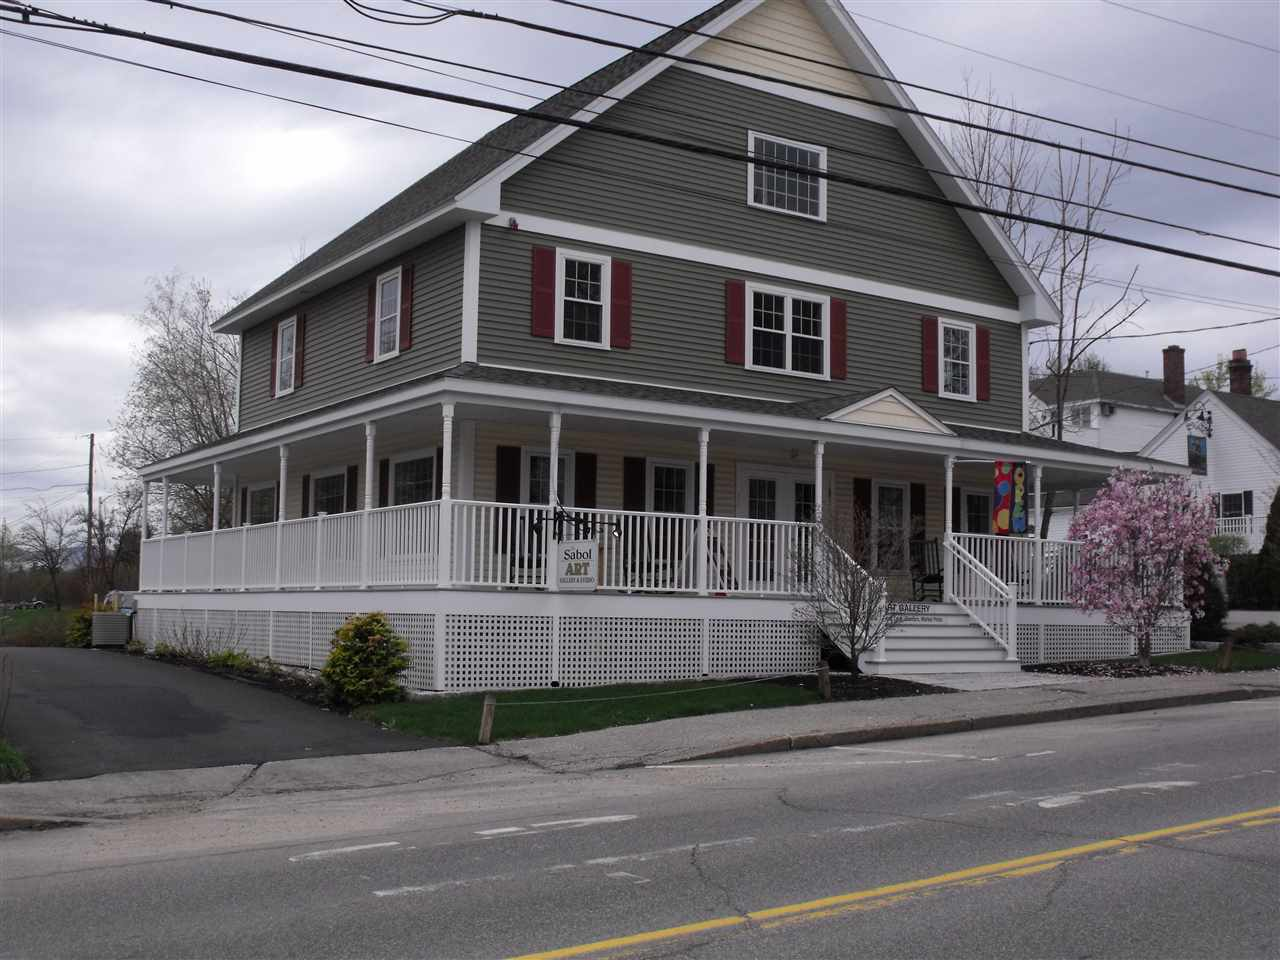 WOLFEBORO NHMulti Family Homes for sale